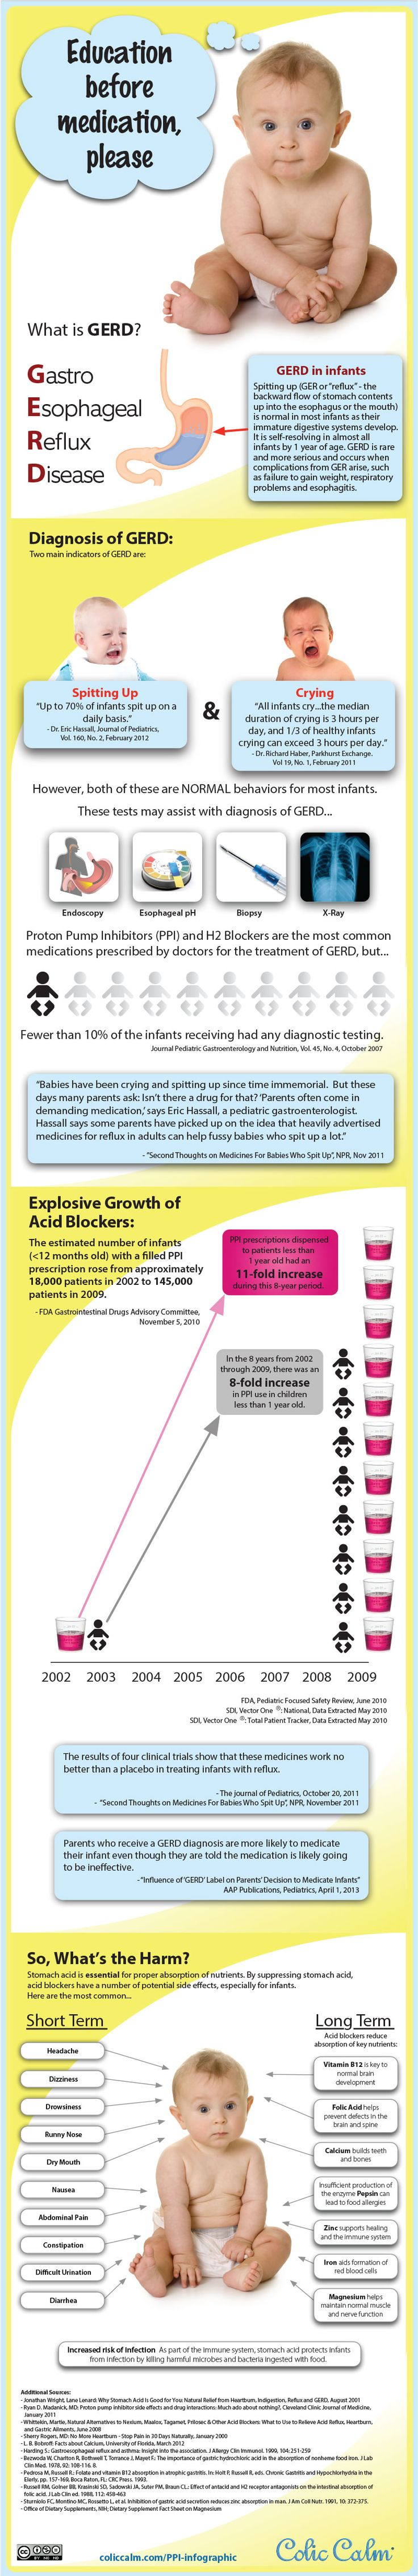 The growth of GERD and reflux drugs for babies, infants and newborns. Are parents over-reacting to spit-up and crying?